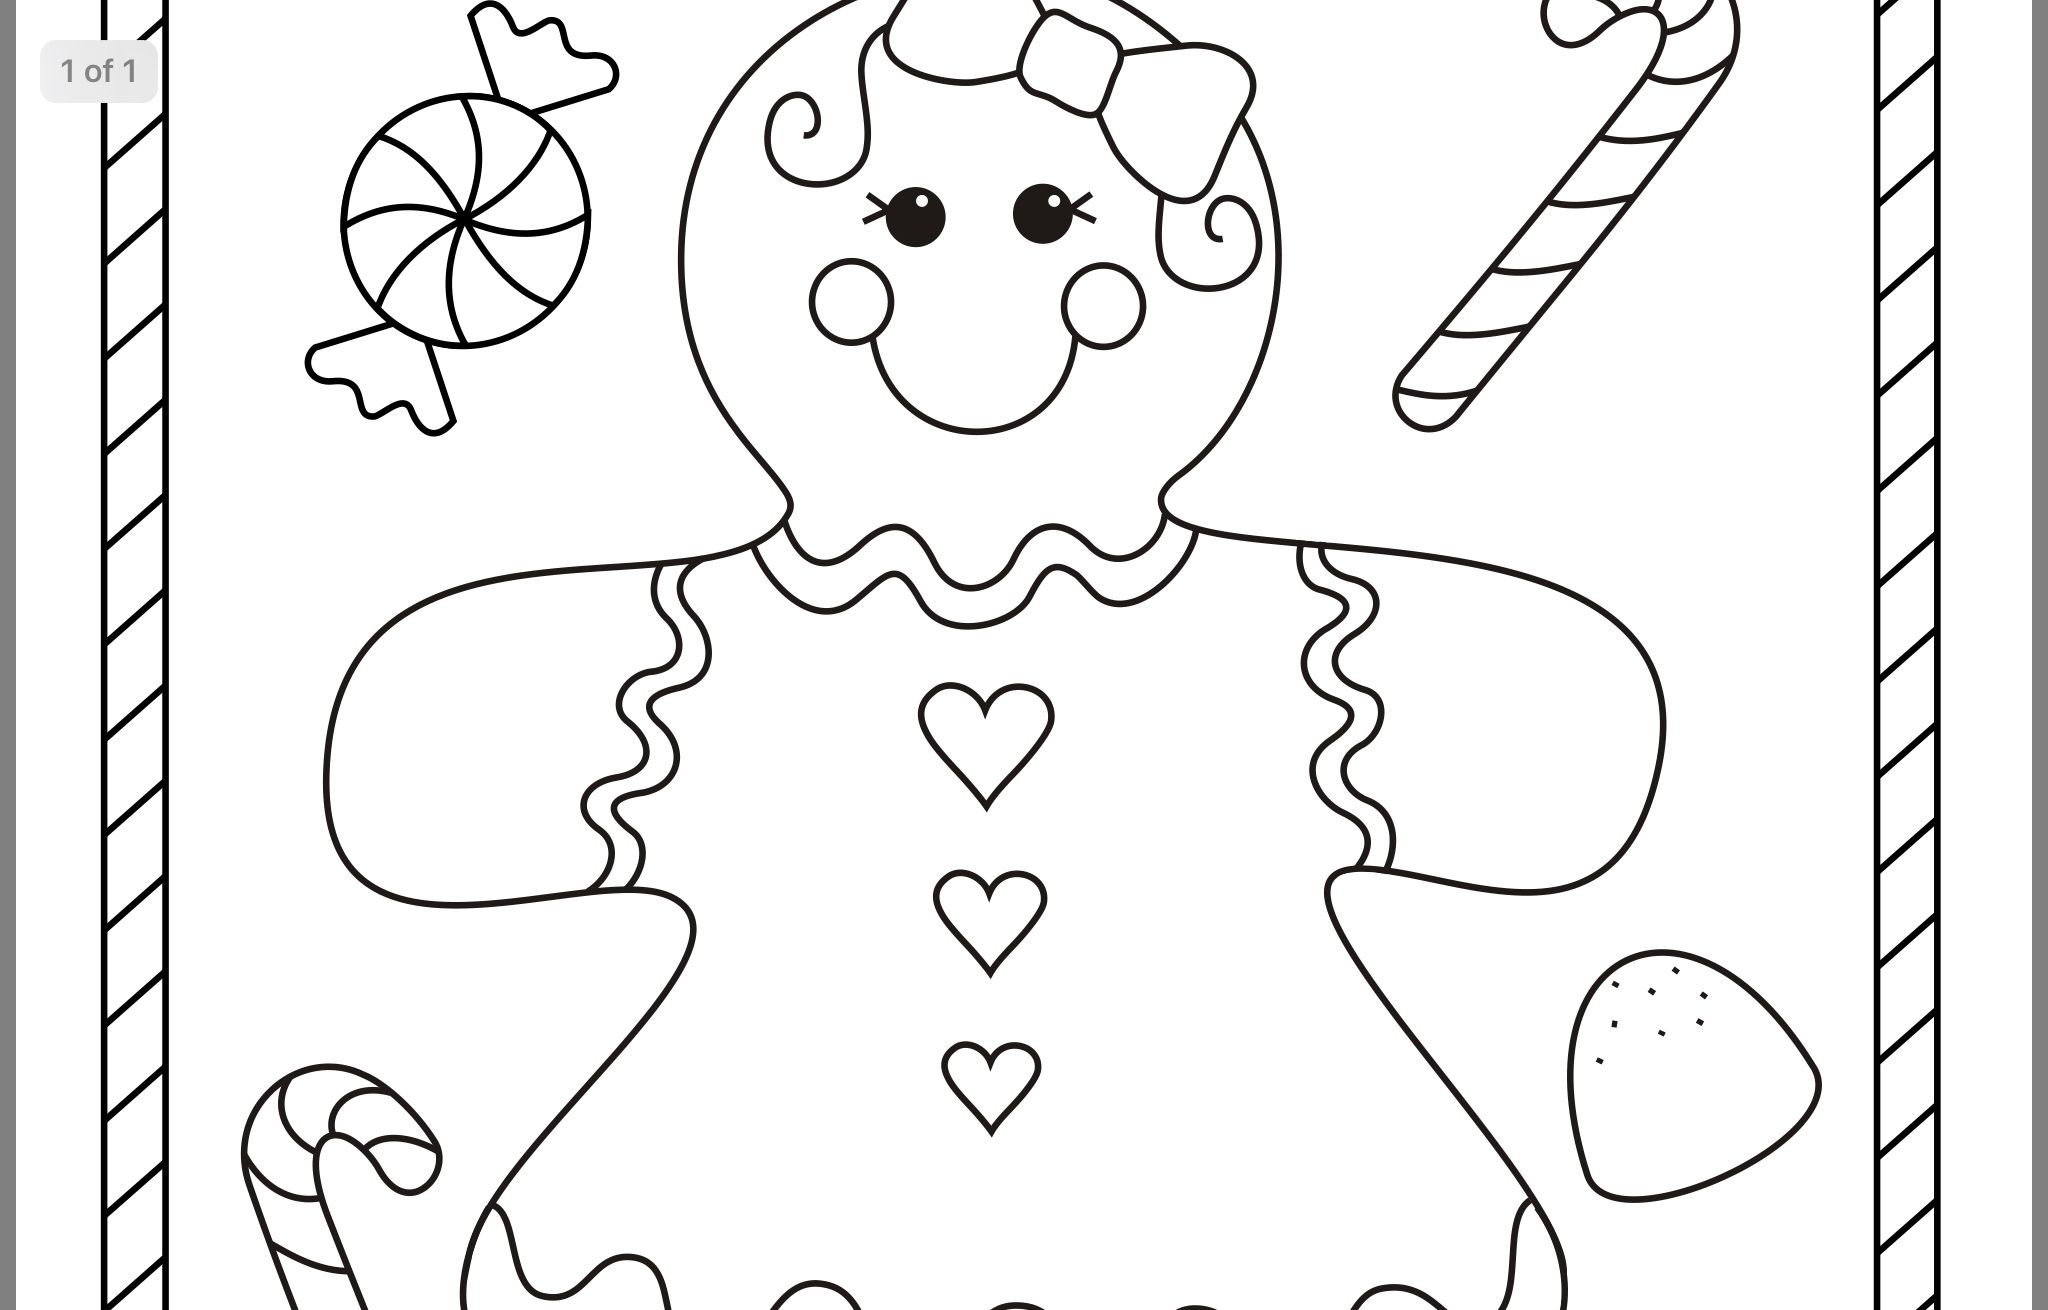 Smile Gingerbread Boy Coloring Pages Coloring pages for